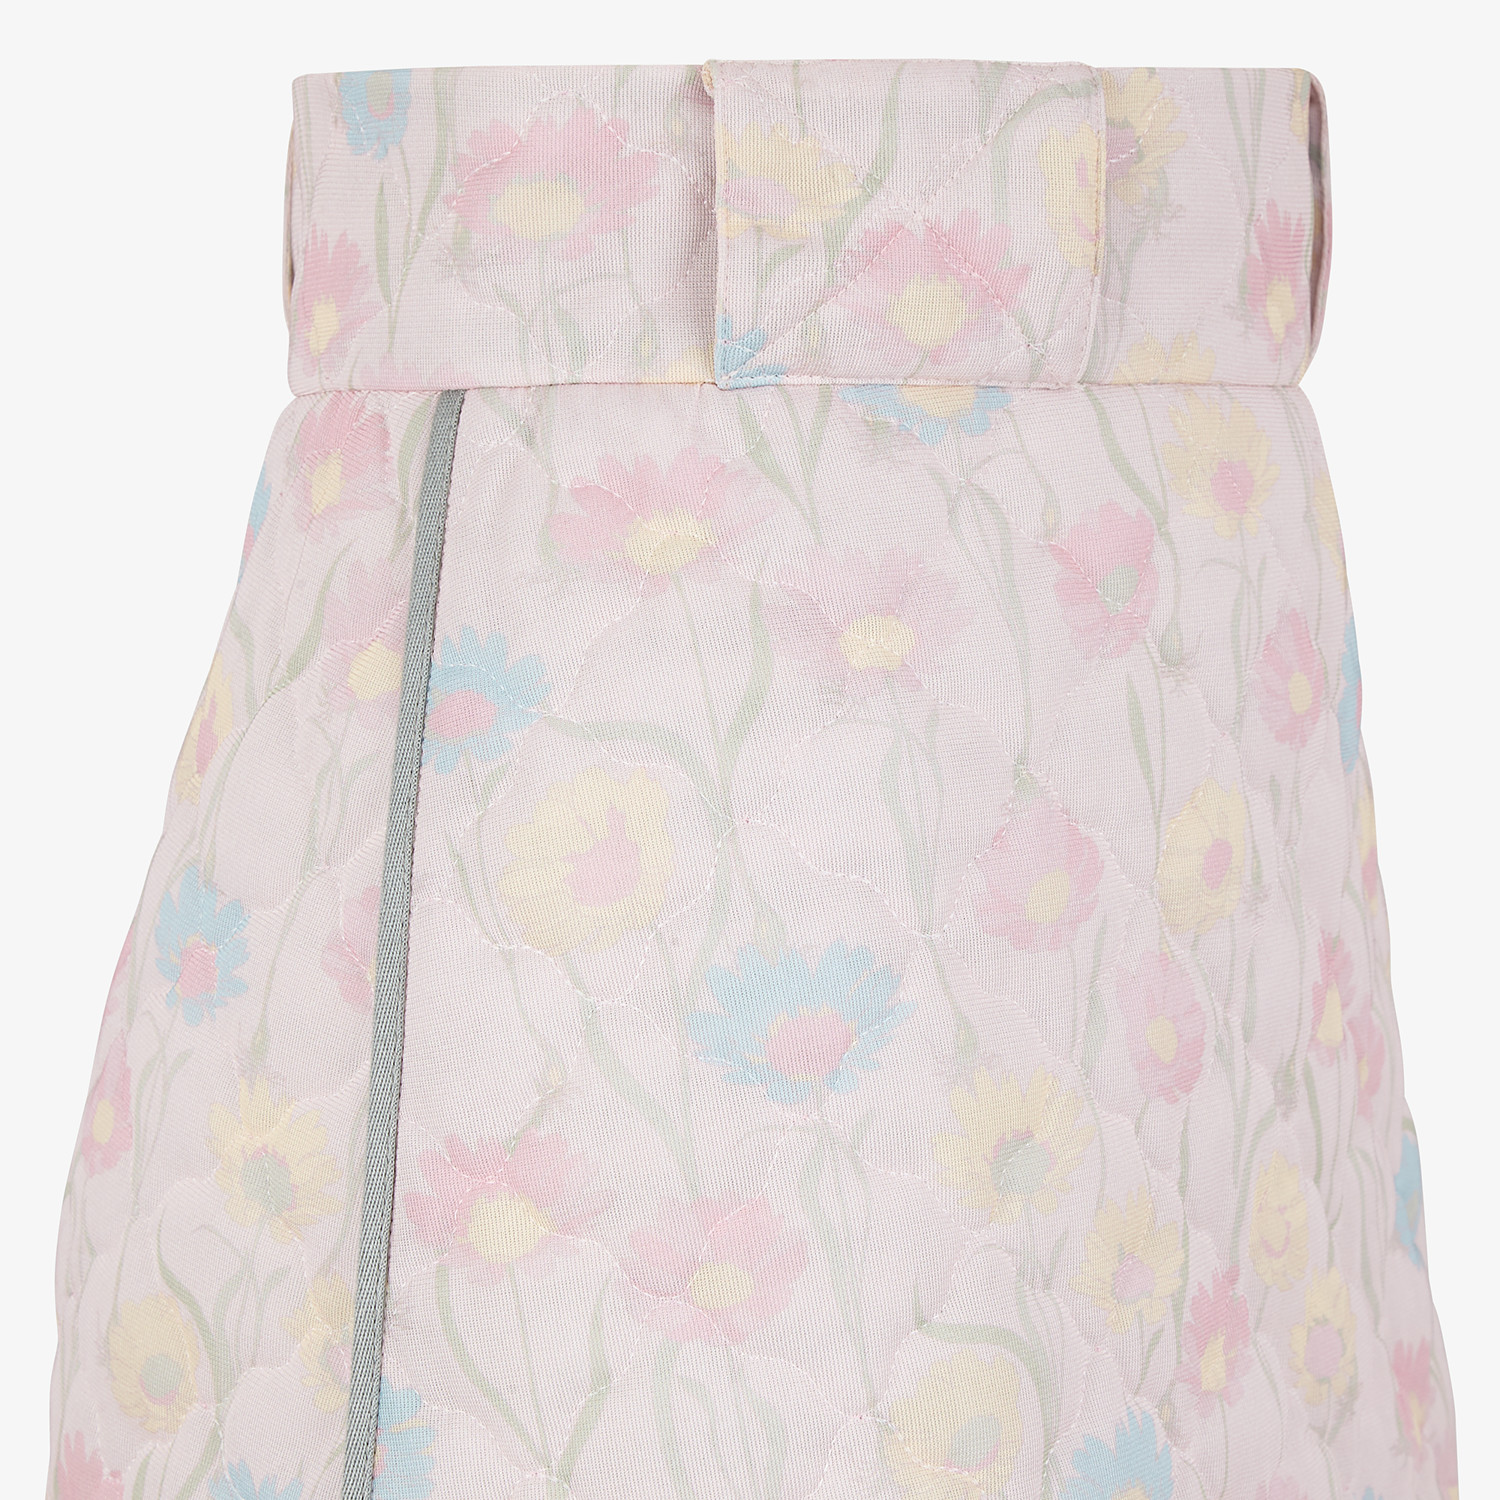 FENDI SKIRT - Pink quilted fabric skirt - view 3 detail